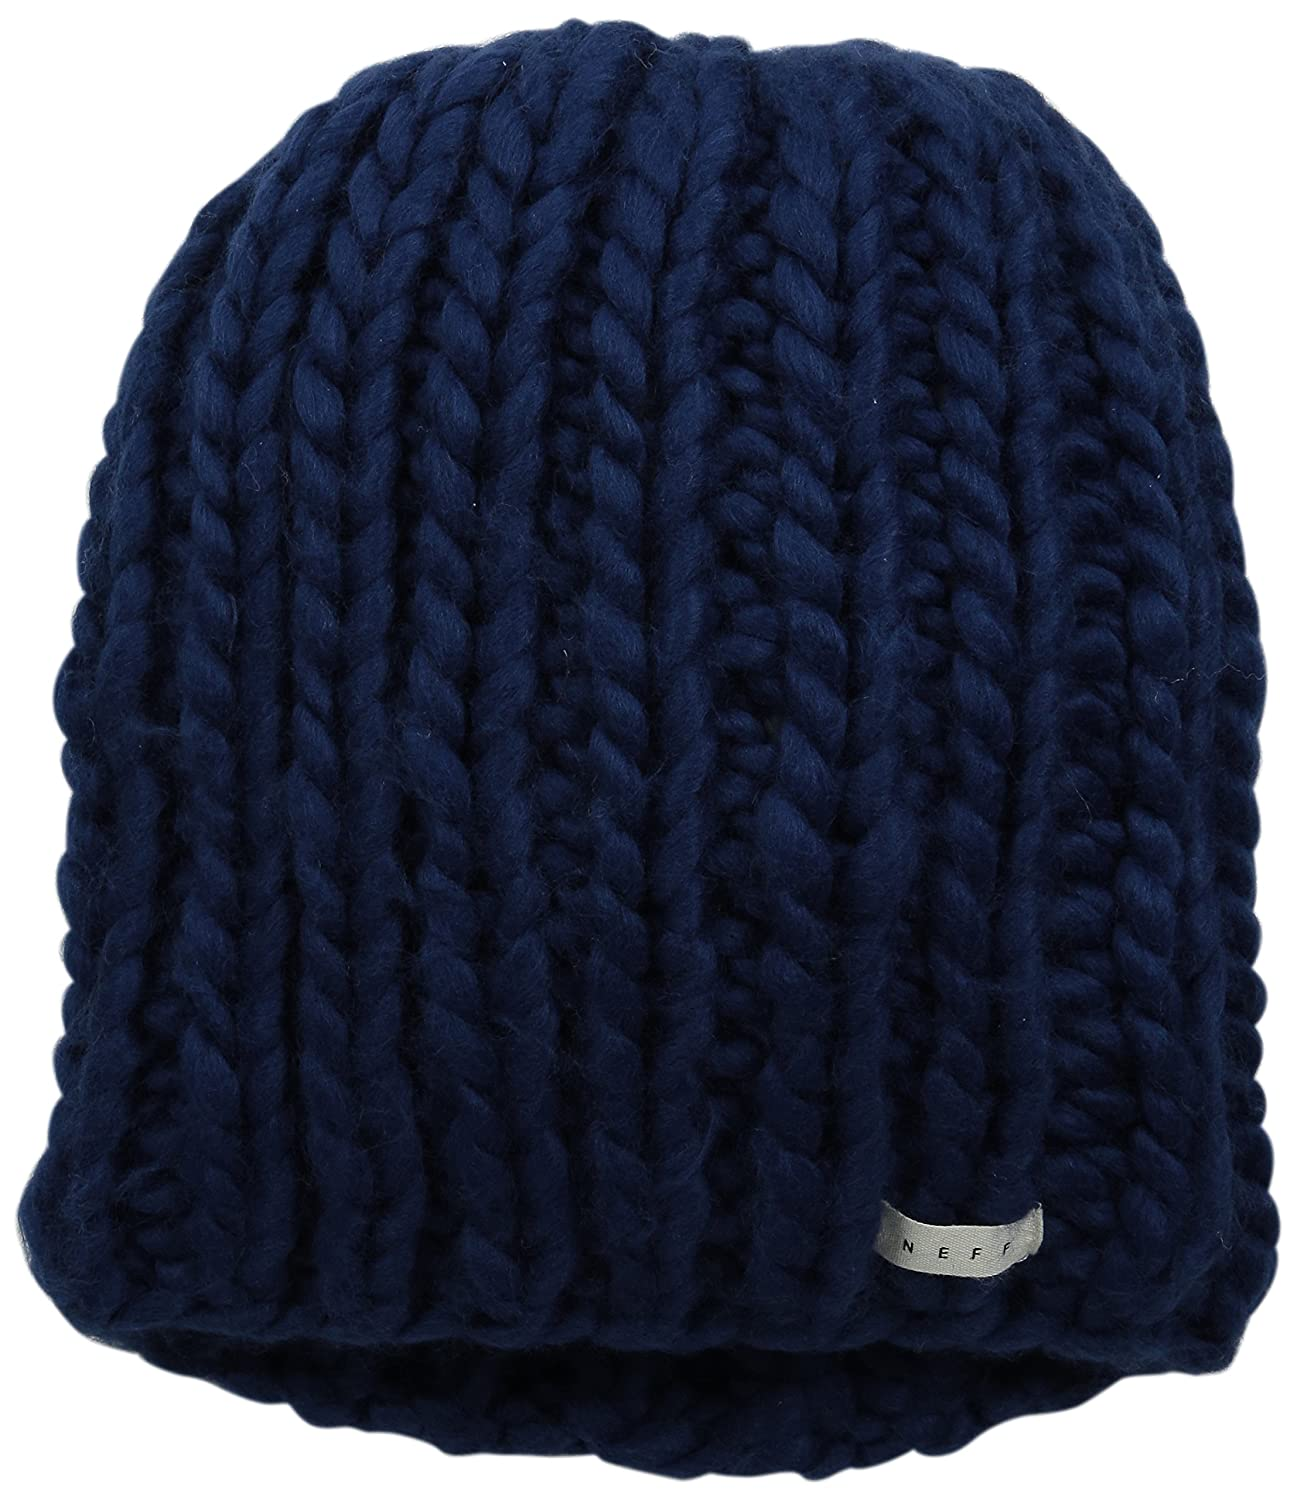 d43239e9b57 Amazon.com  Neff Womens Beanie Cara Black